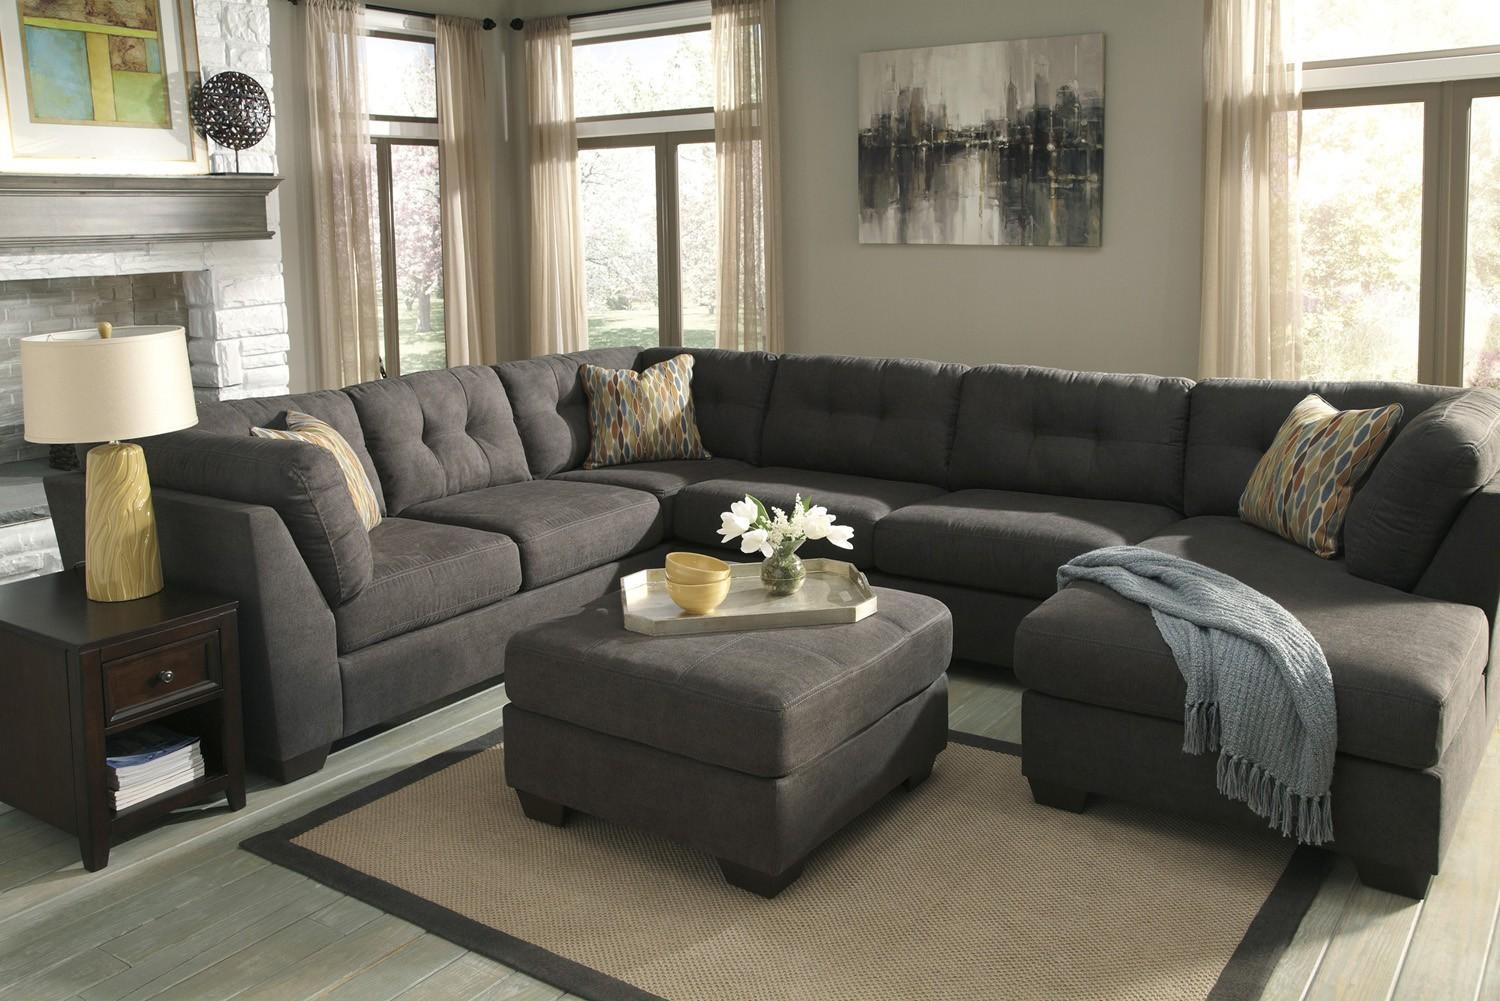 Futon Sofa Bed Single Sofa Bed Leather Sleeper Sofa Pull Out Sofa Regarding City Sofa Beds (View 20 of 20)